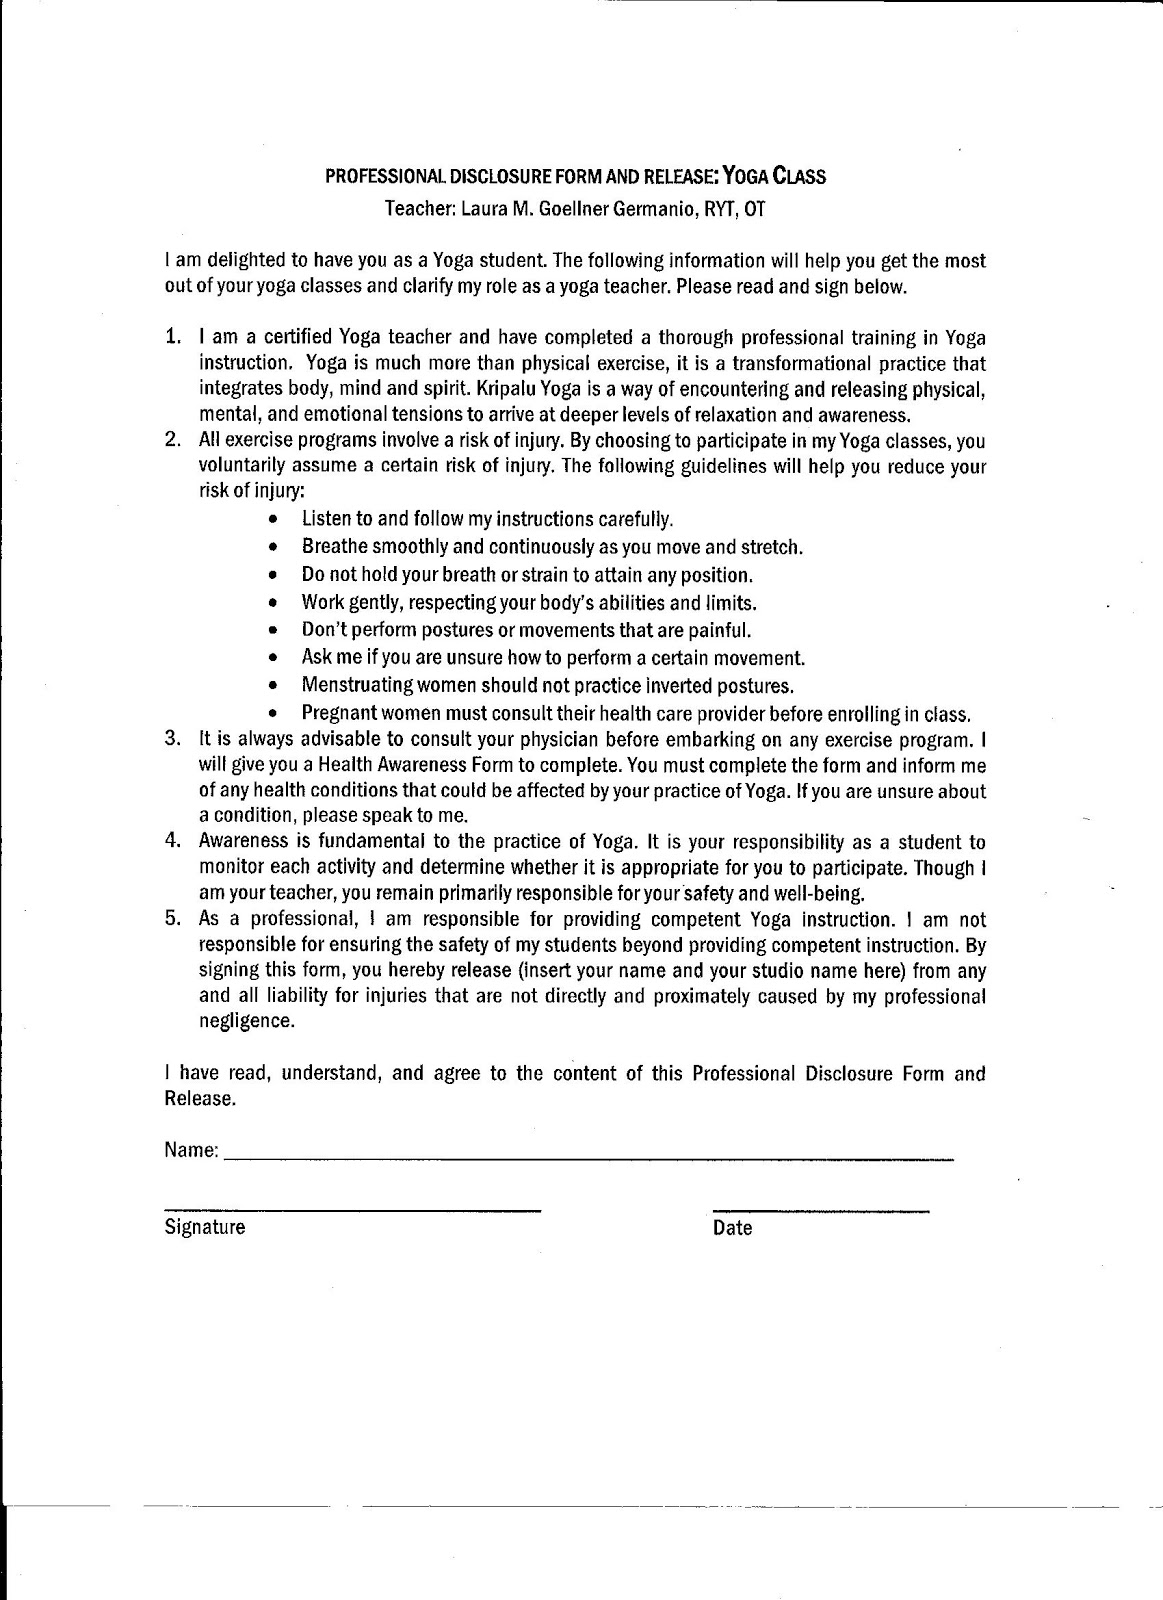 General Liability Waiver Form Complaint Letter Template Word Check .  General Liability Release